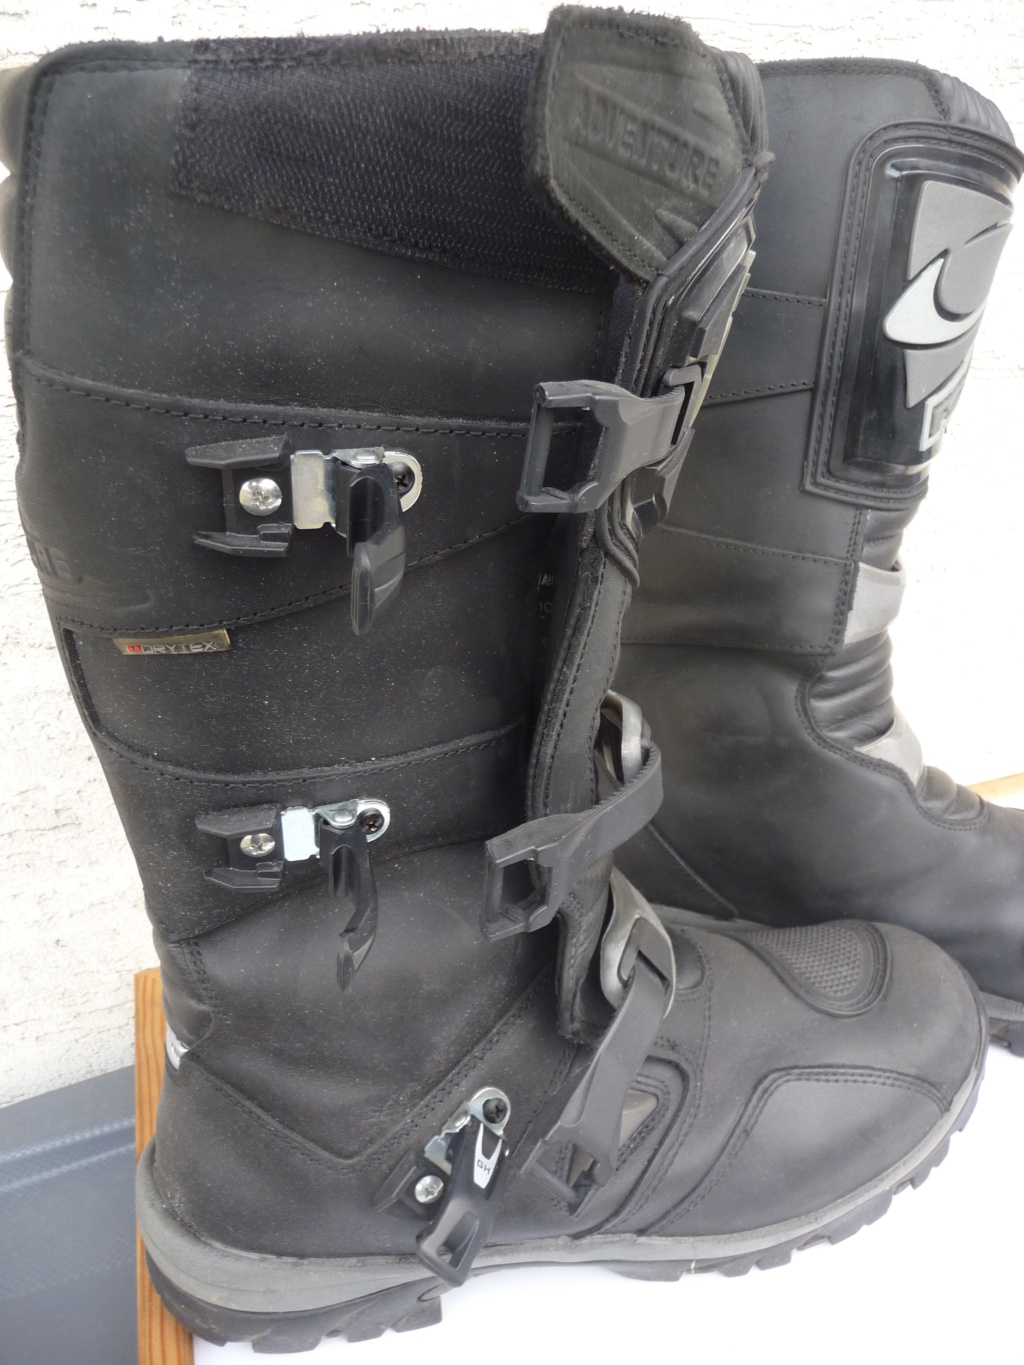 [VDS] Bottes Forma Adventure Taille 47 (45-46) 00312